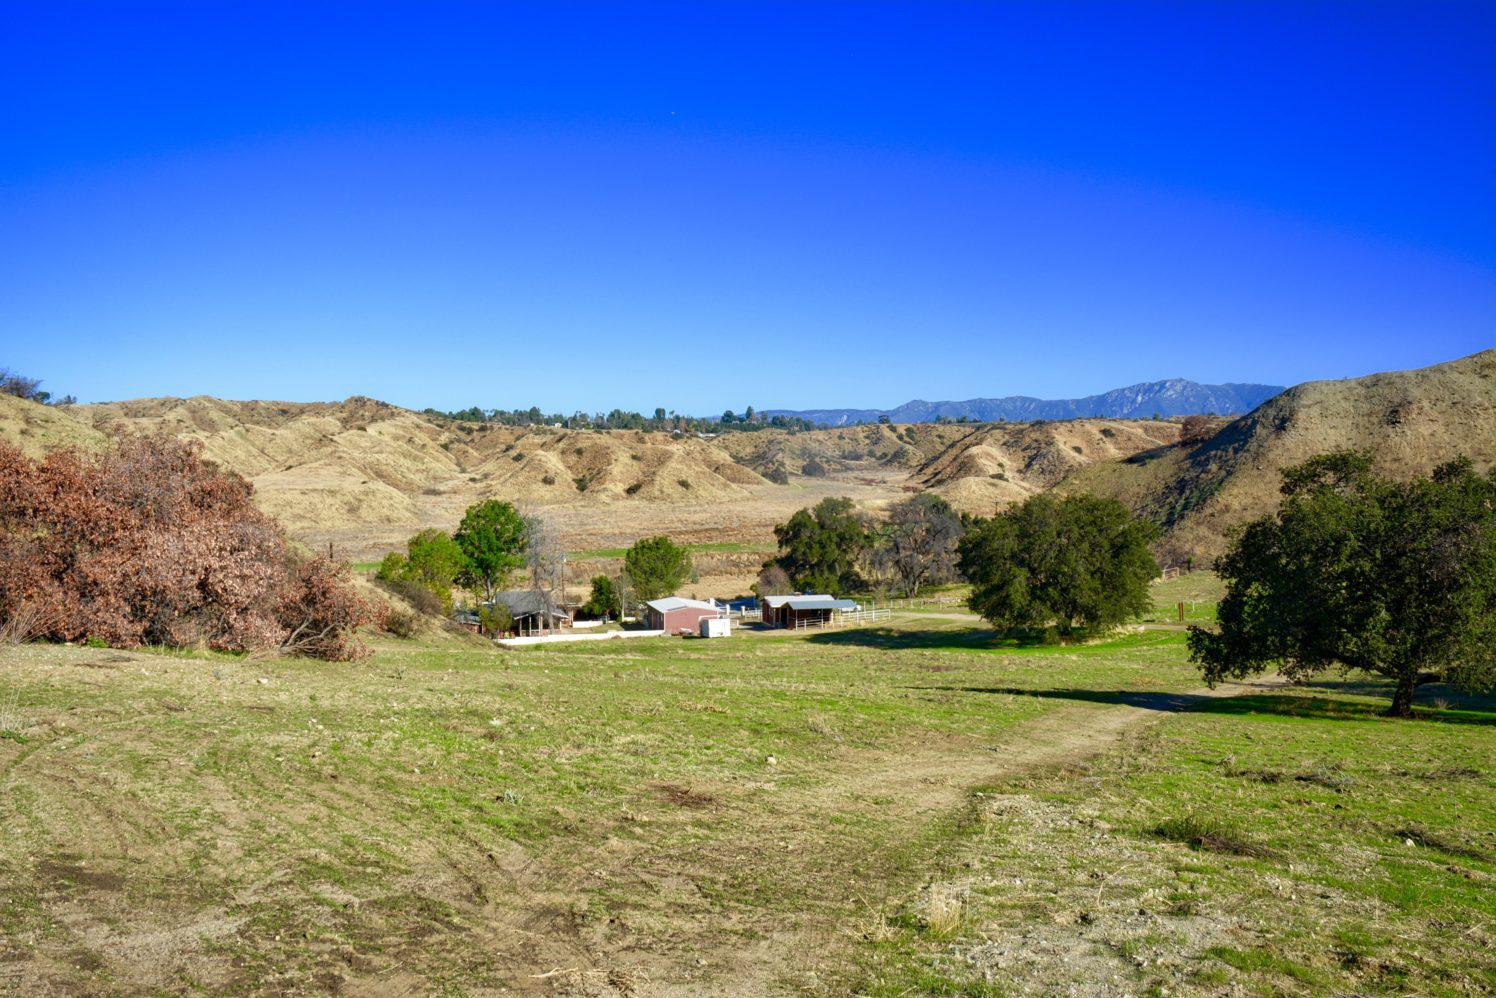 Redlands Gateway Ranch - Drive to the Finish! | Redlands Conservancy